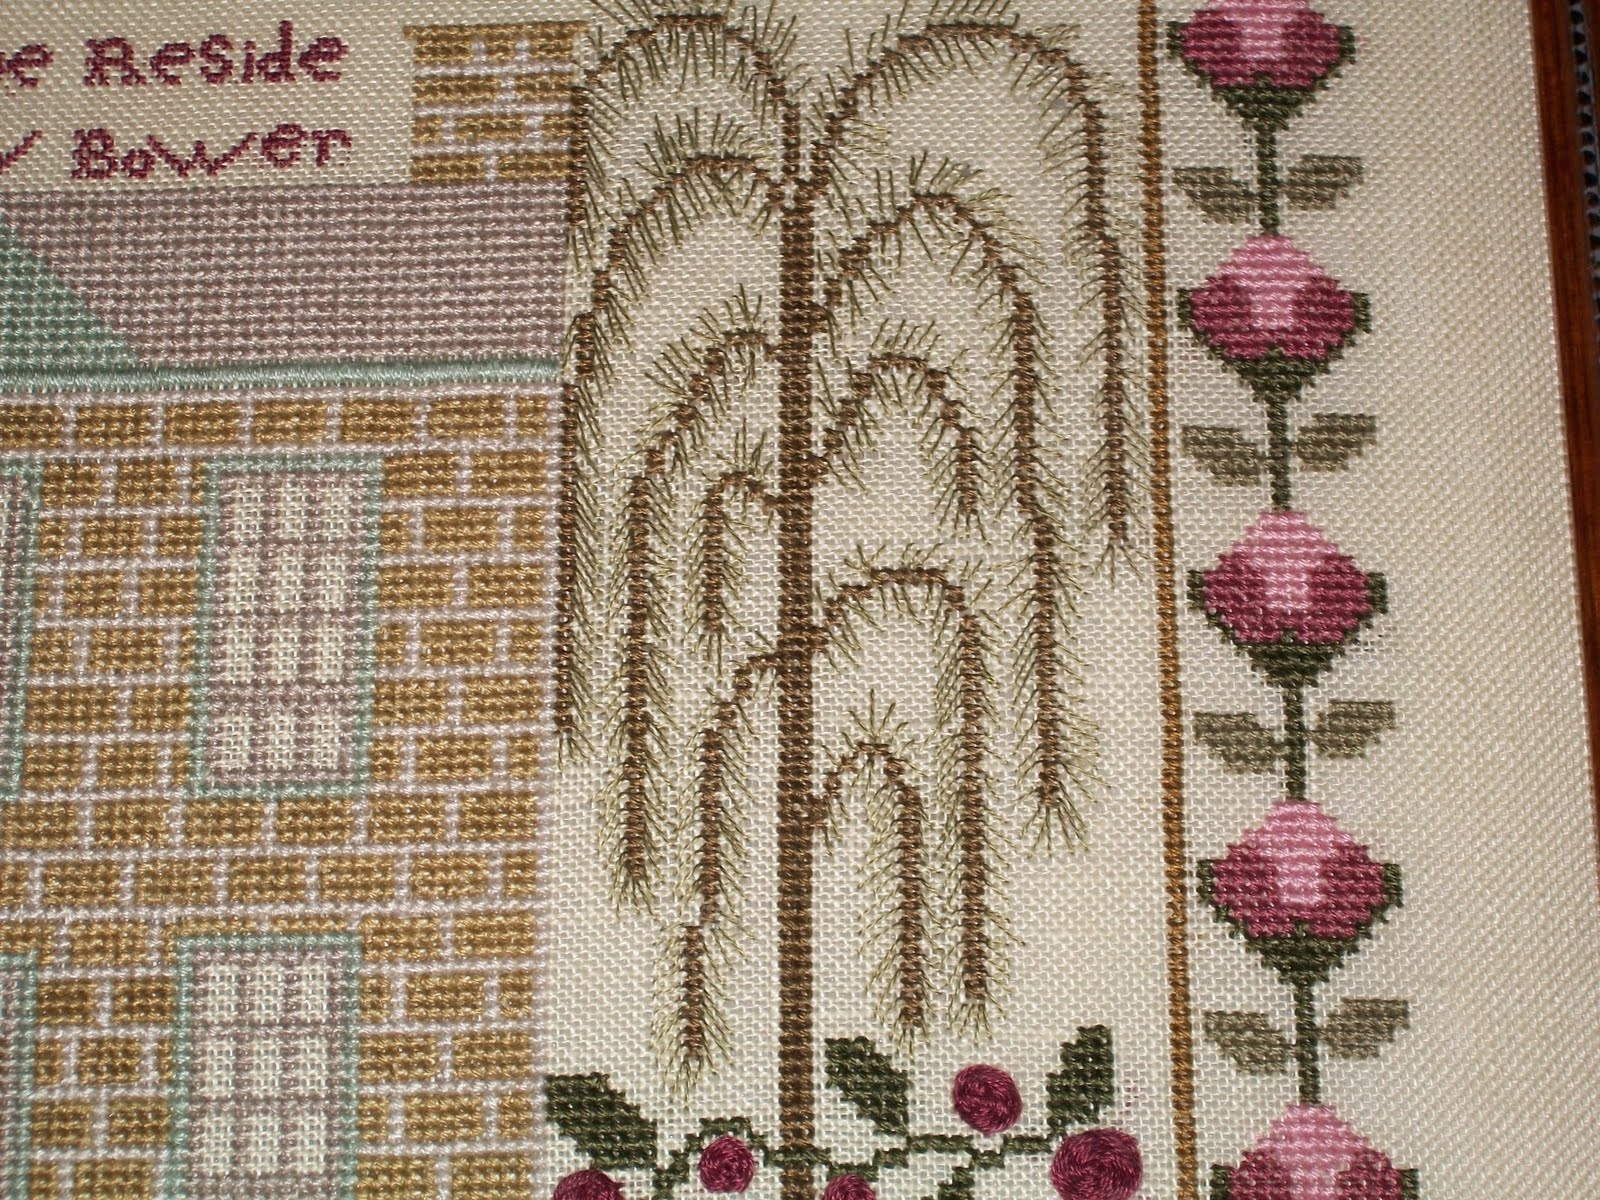 The Polka Dot Chicken October 2010 Someday Pink Floral Embroidery Top I Want A Weeping Willow Tree In My Yard Think They Are So Lovely This Sampler Is Part Of Trio Ewe Eye Pieces That Hang Together